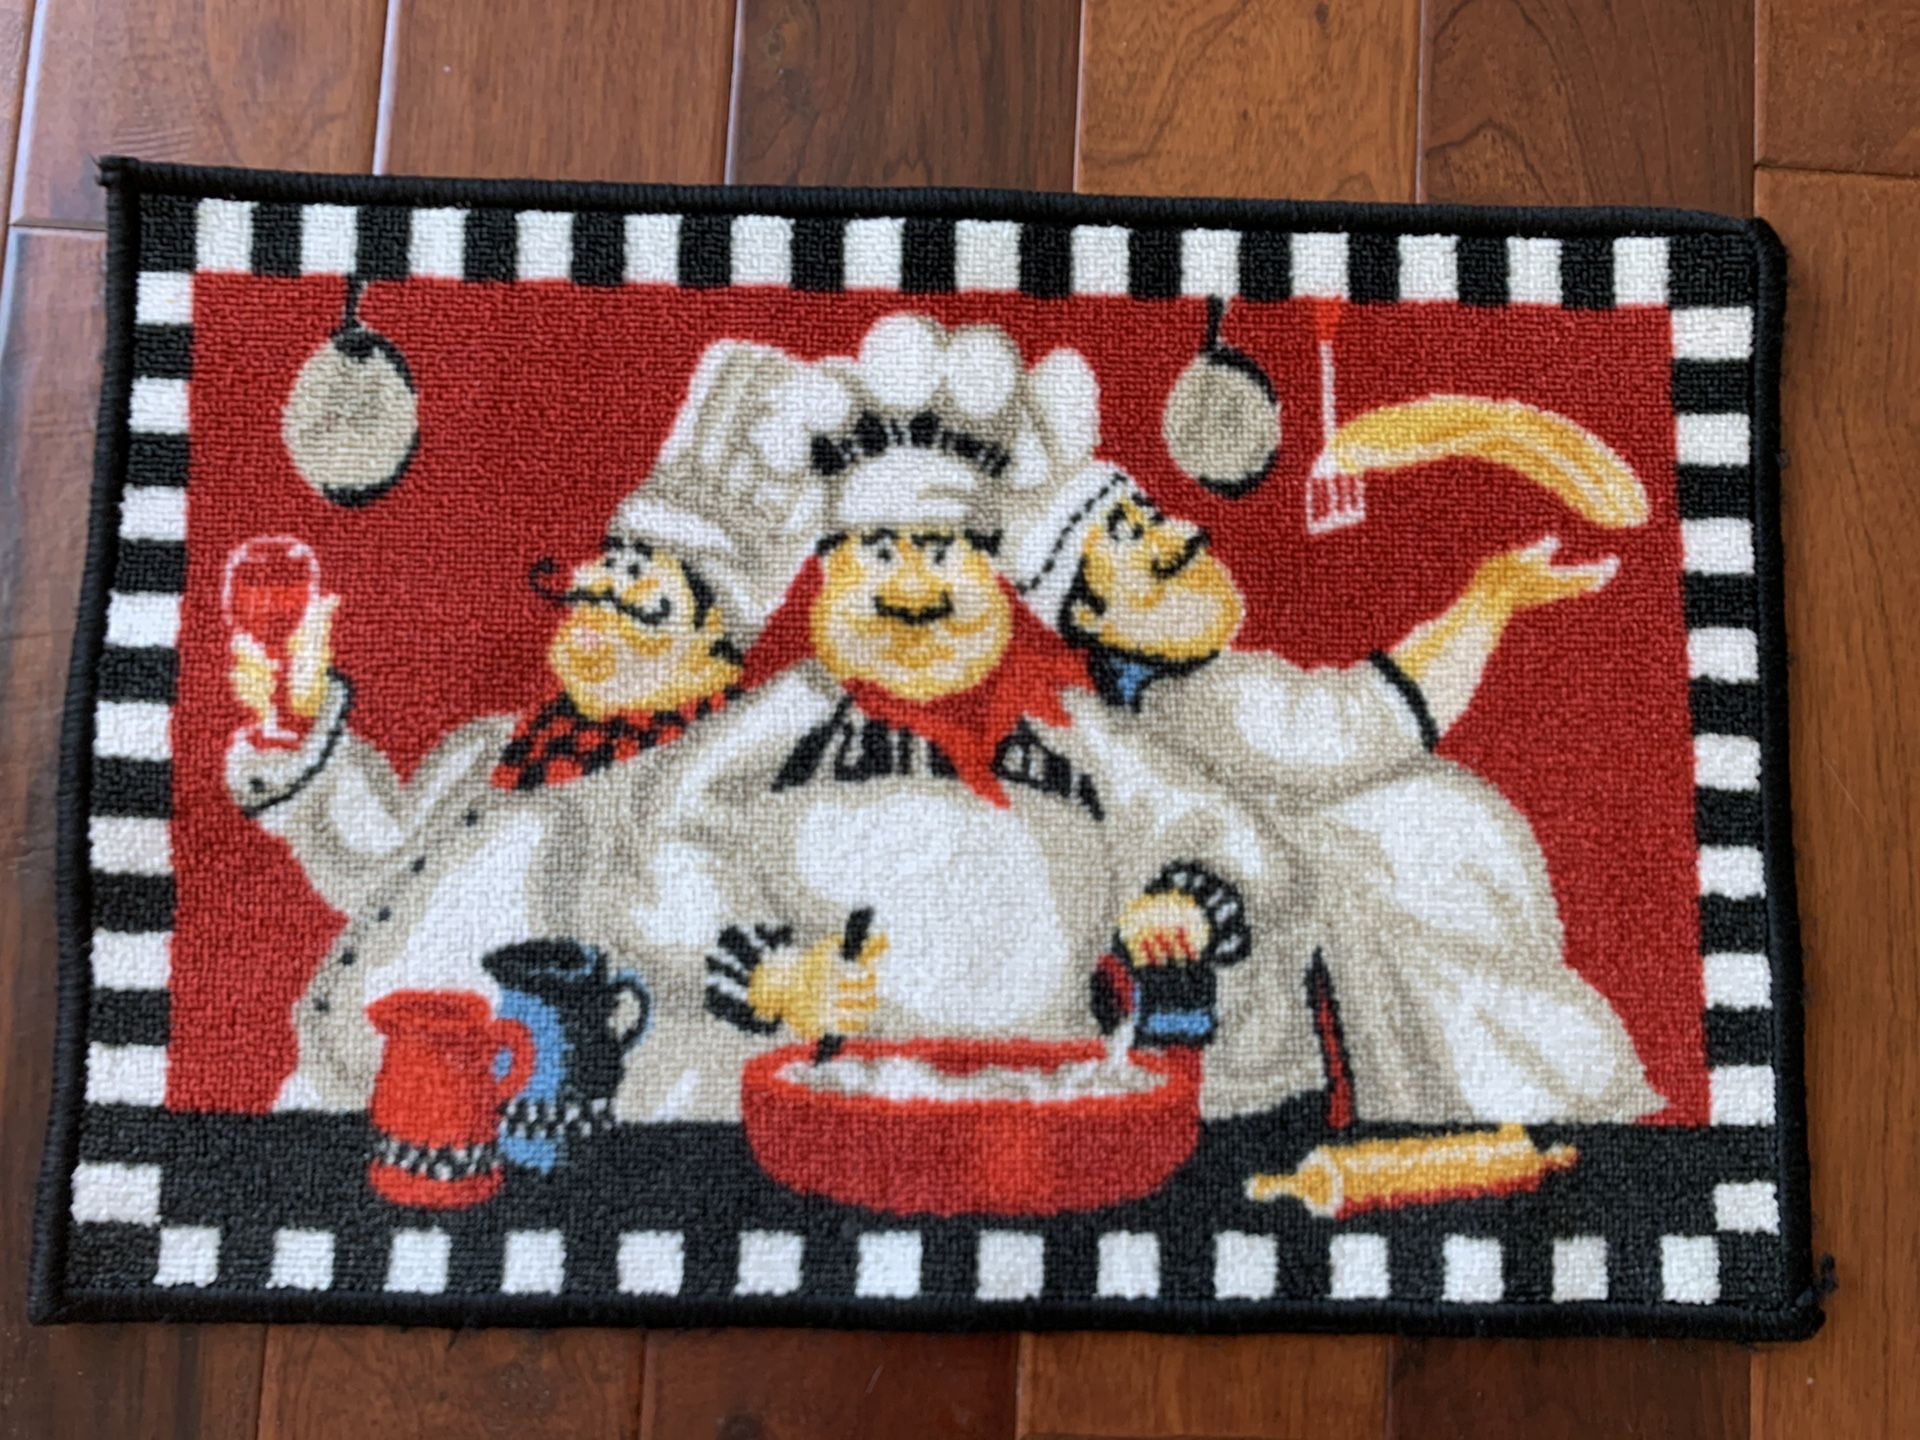 Cute kitchen rug by Fat Chef never used 16x24.5